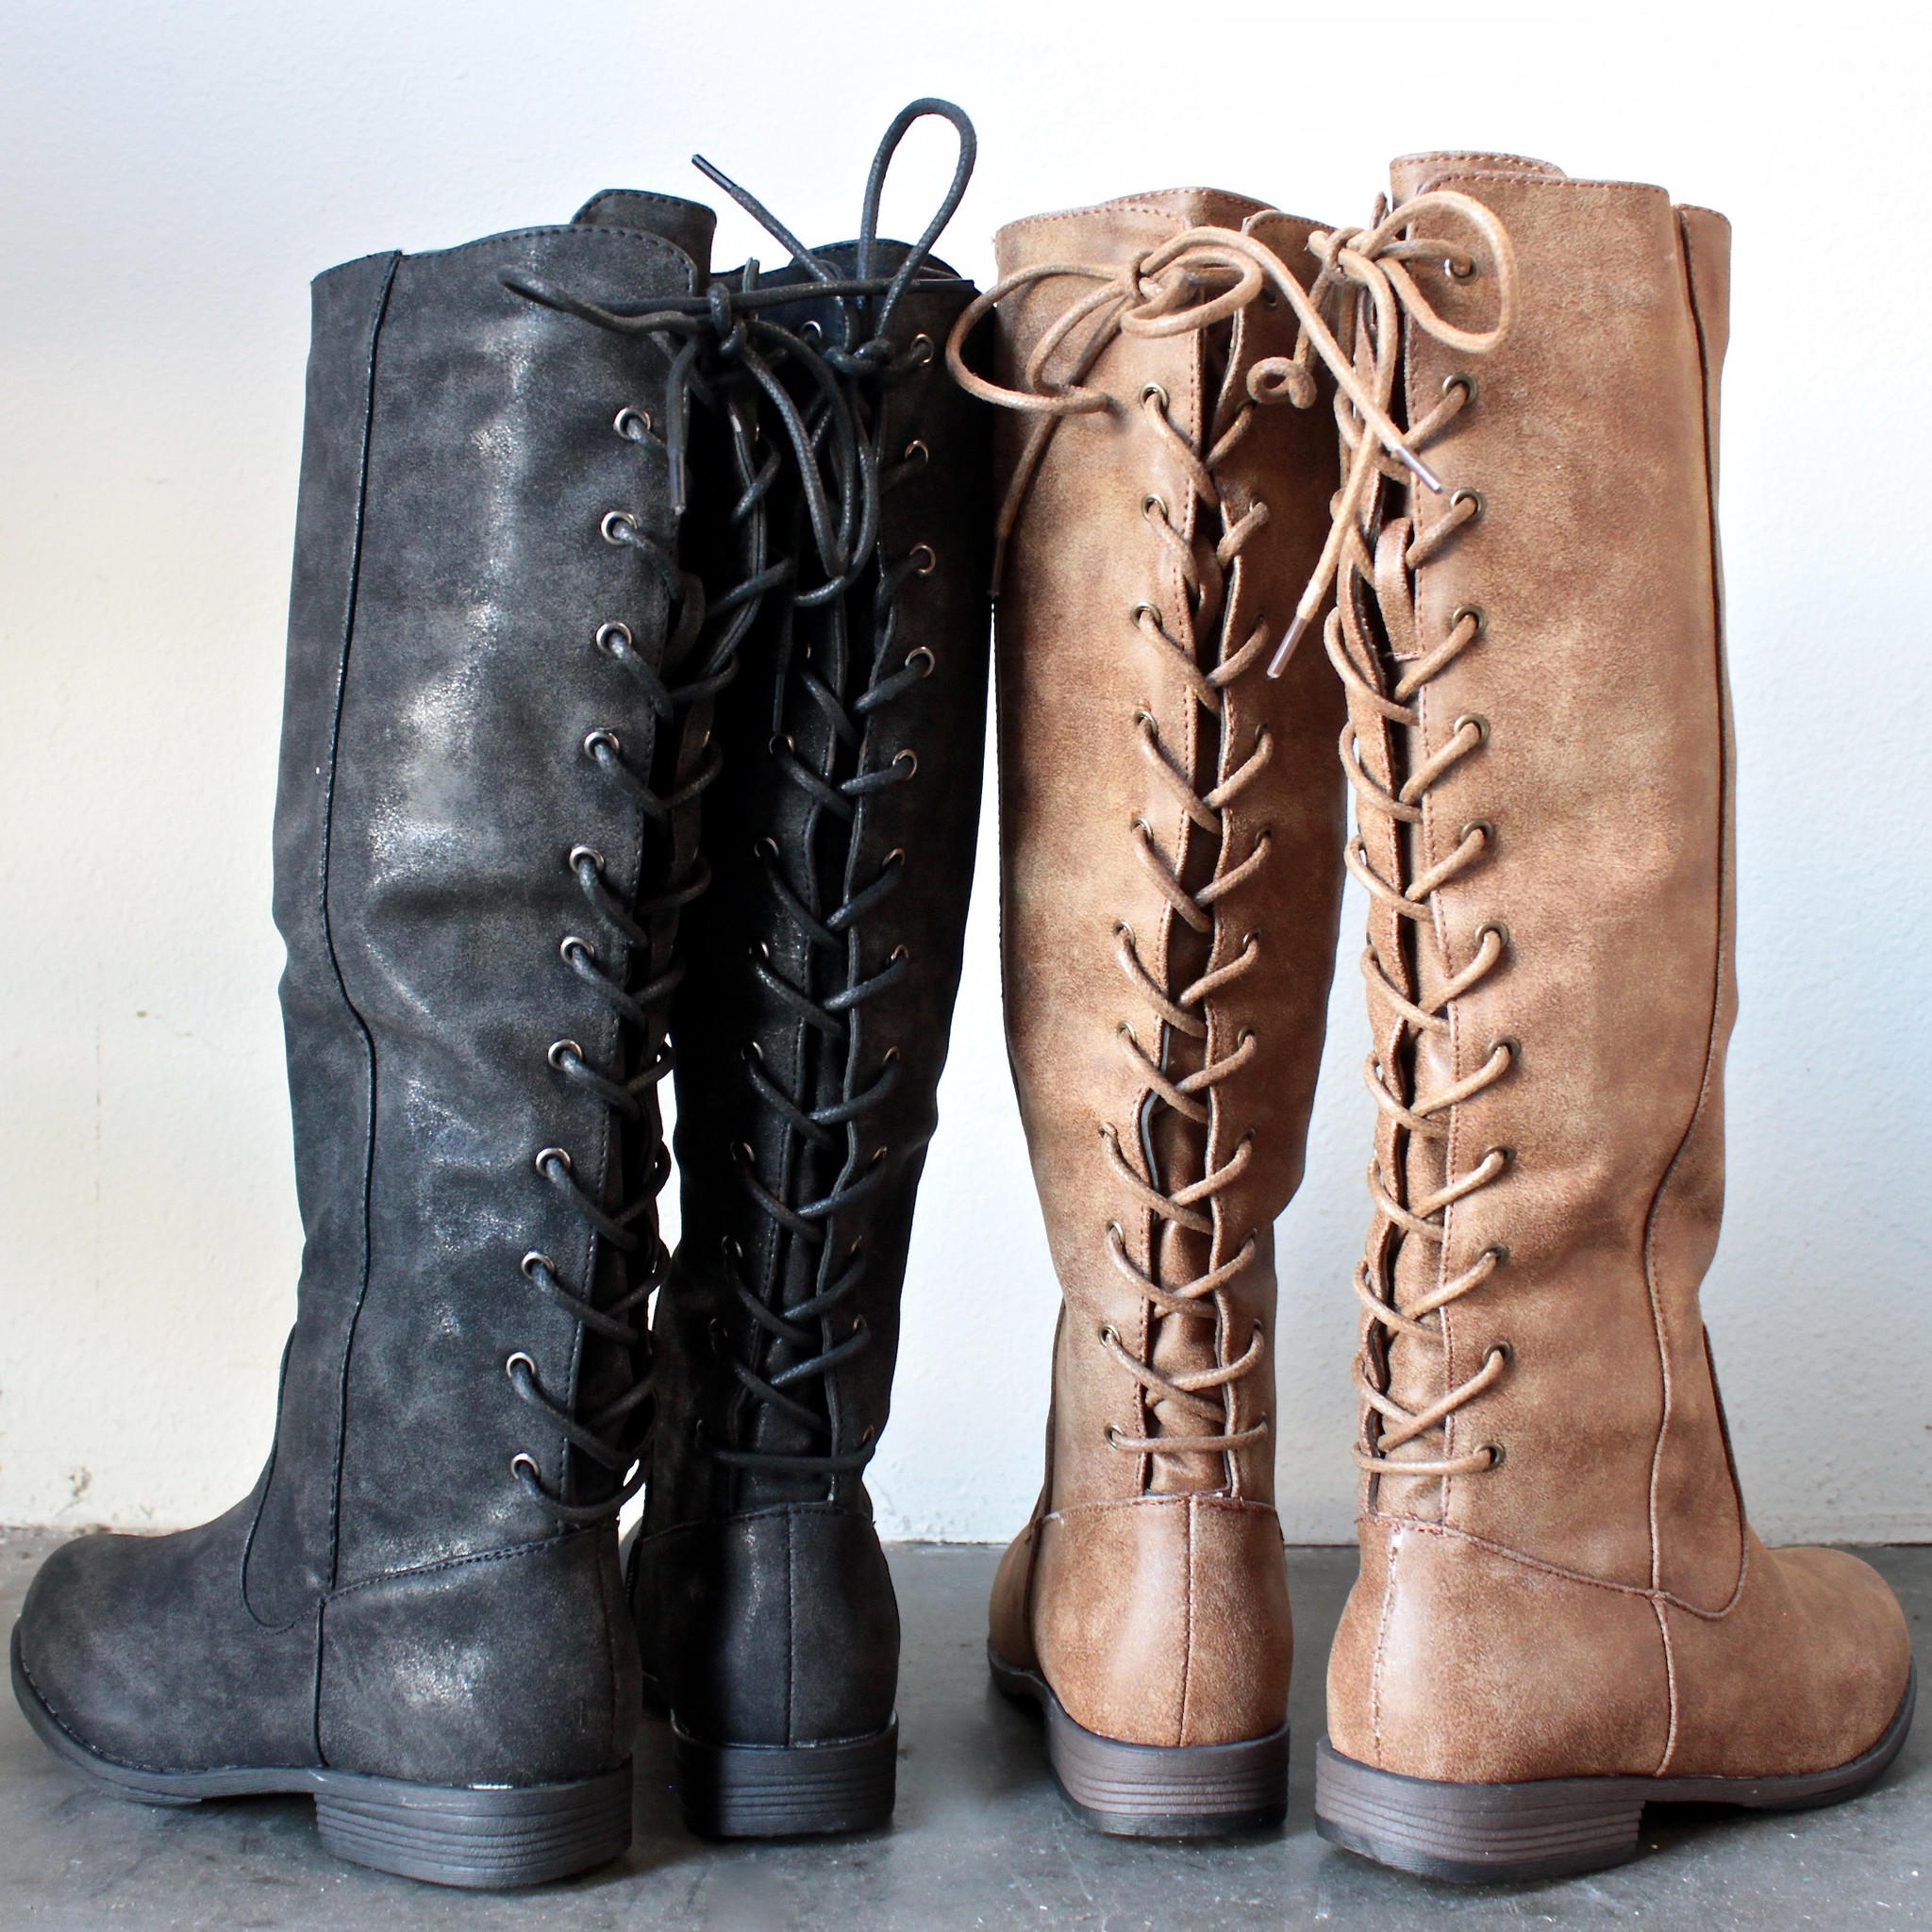 Back lace up boots - Full Size Full Size